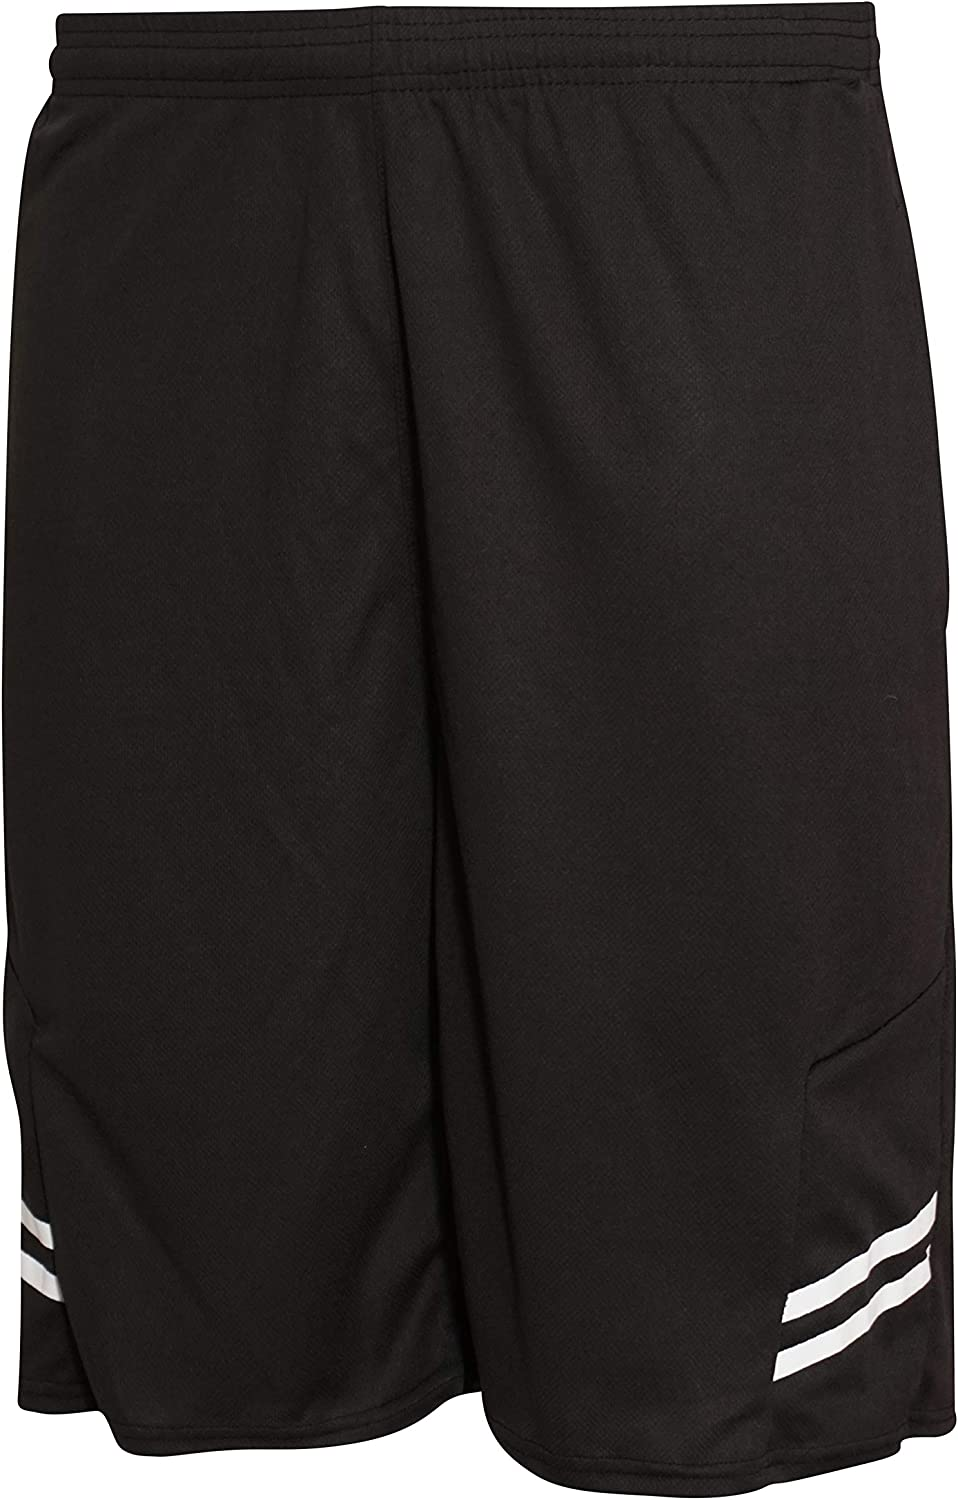 Real Essentials Boys' 5-Pack Mesh Active Athletic Performance Basketball Shorts with Pockets: Clothing